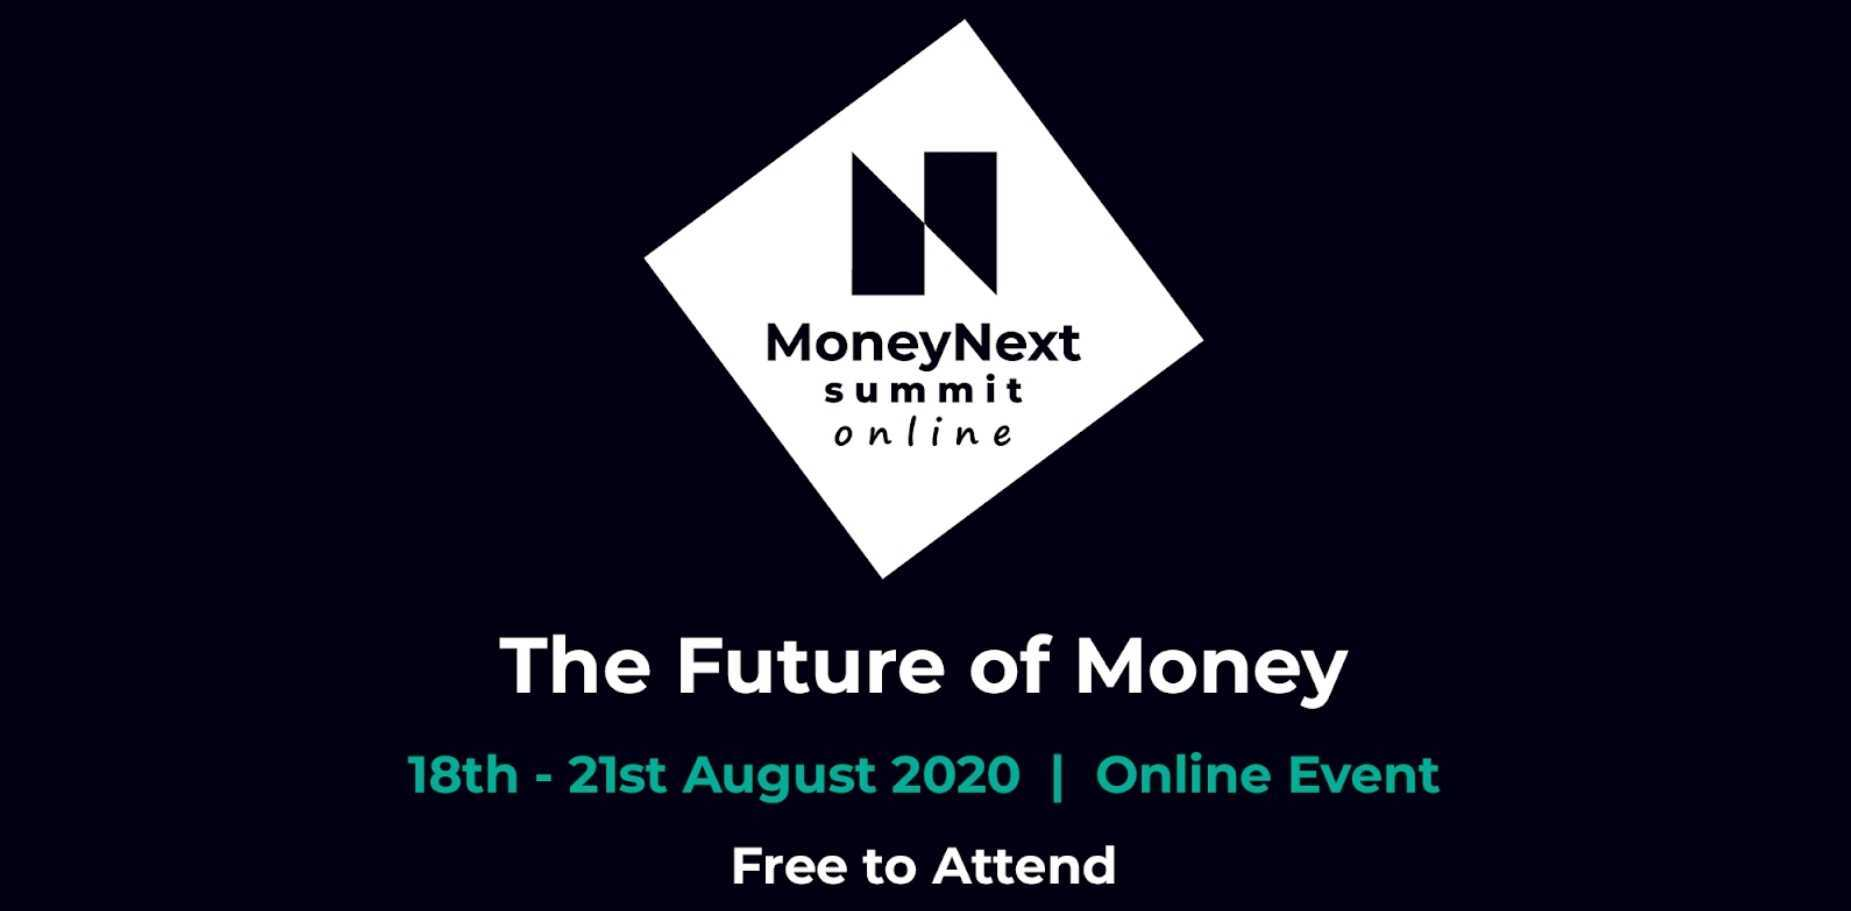 MoneyNext Summit Goes Virtual, Live Discussion Panel Starts August 18th, 2020